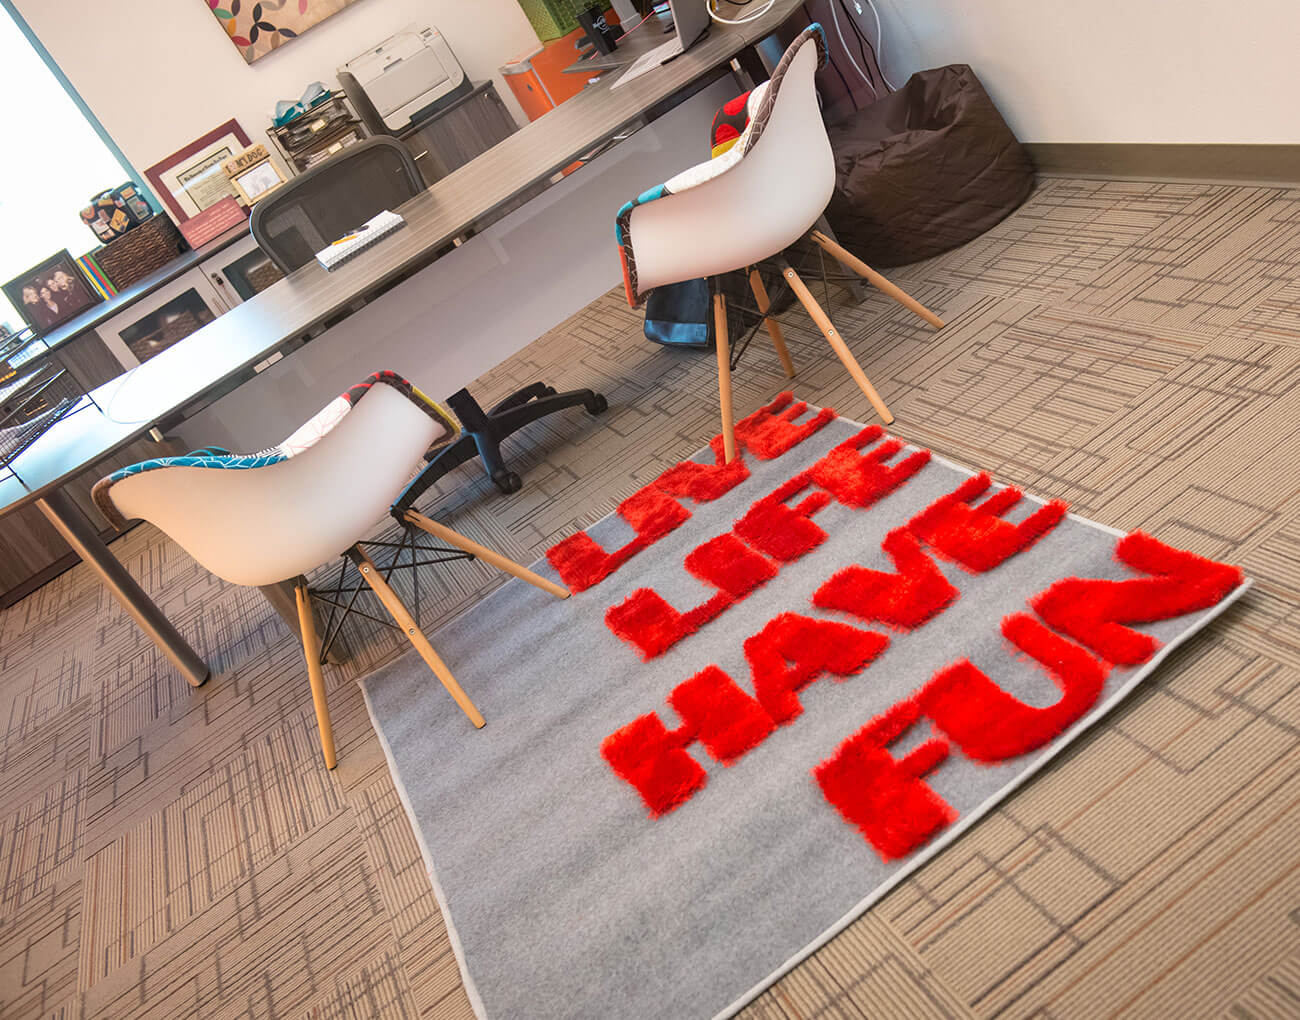 An office space with a rug that says